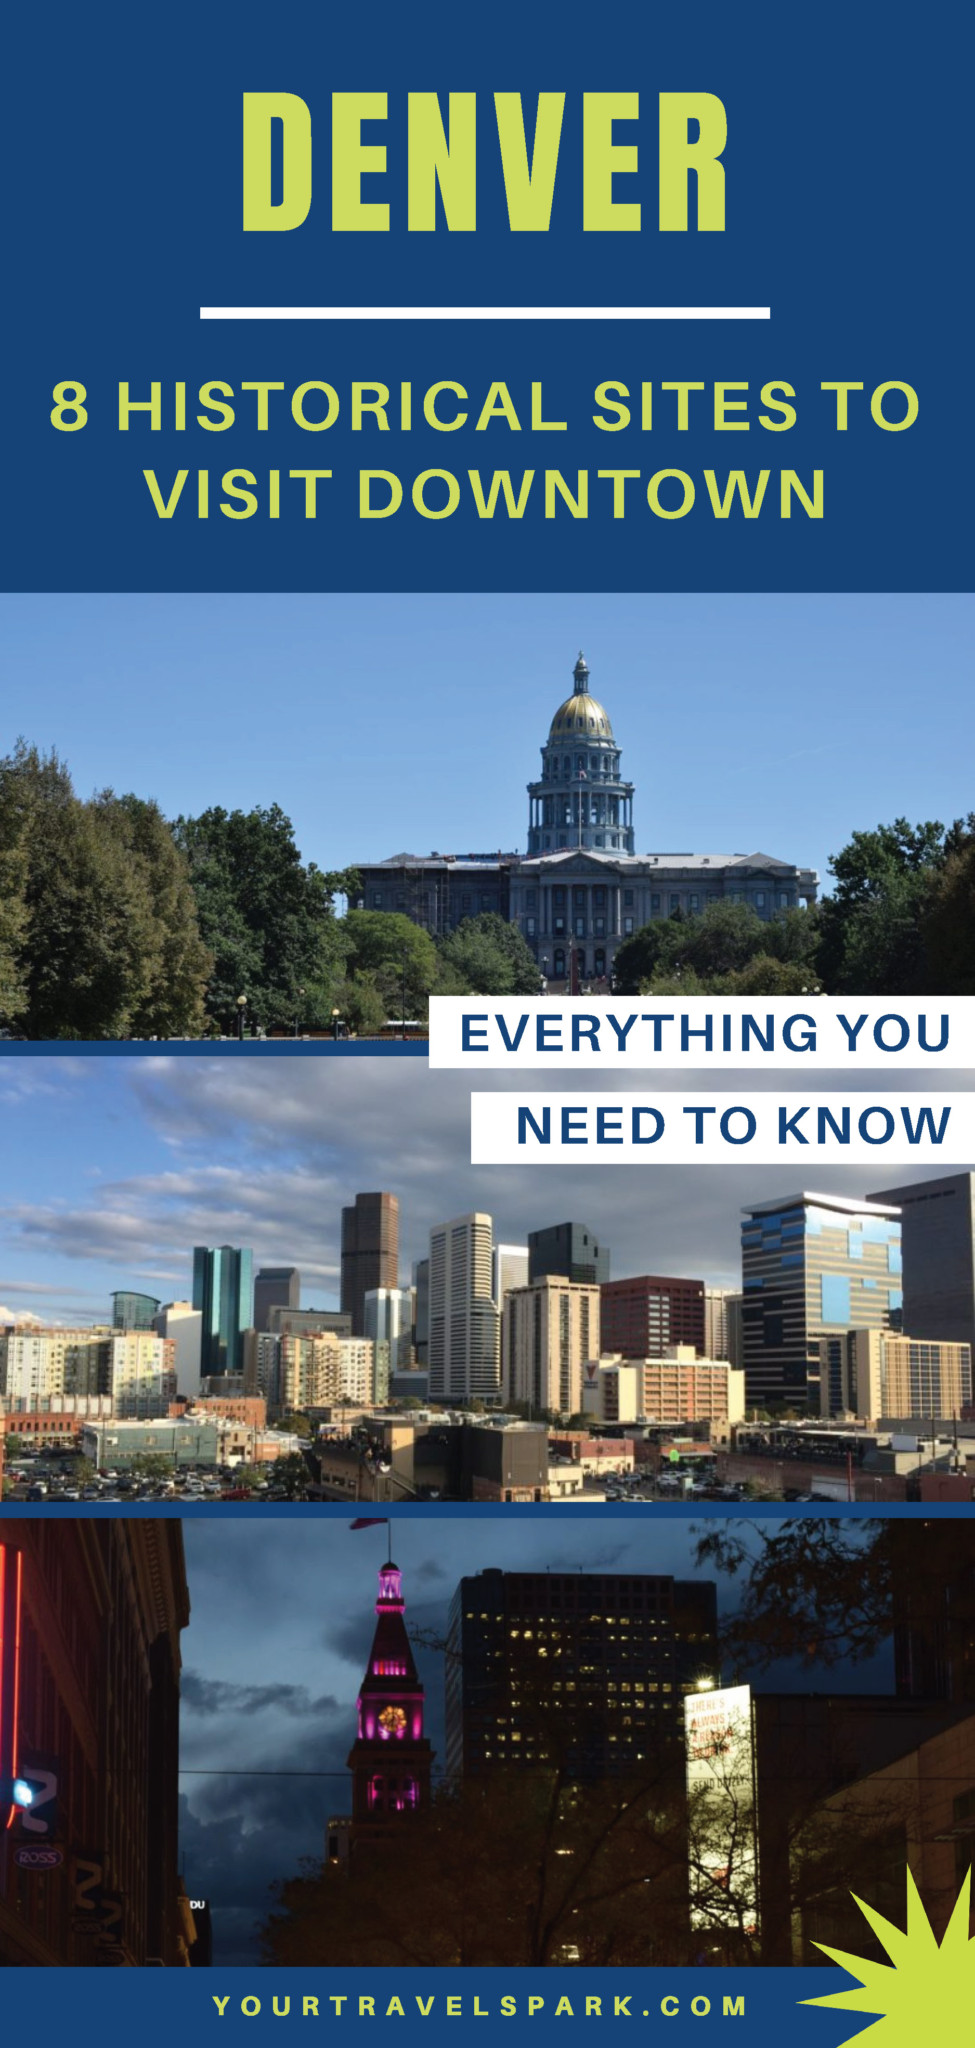 Downtown Denver, Colorado is a beautiful place - here are some historical sites to visit in Denver, Co. #denver #denverco #denvercolorado #colorado #co #historicalsites #historicsites #history #sites #historicbuildings #denverhistory #coors #coloradohistory